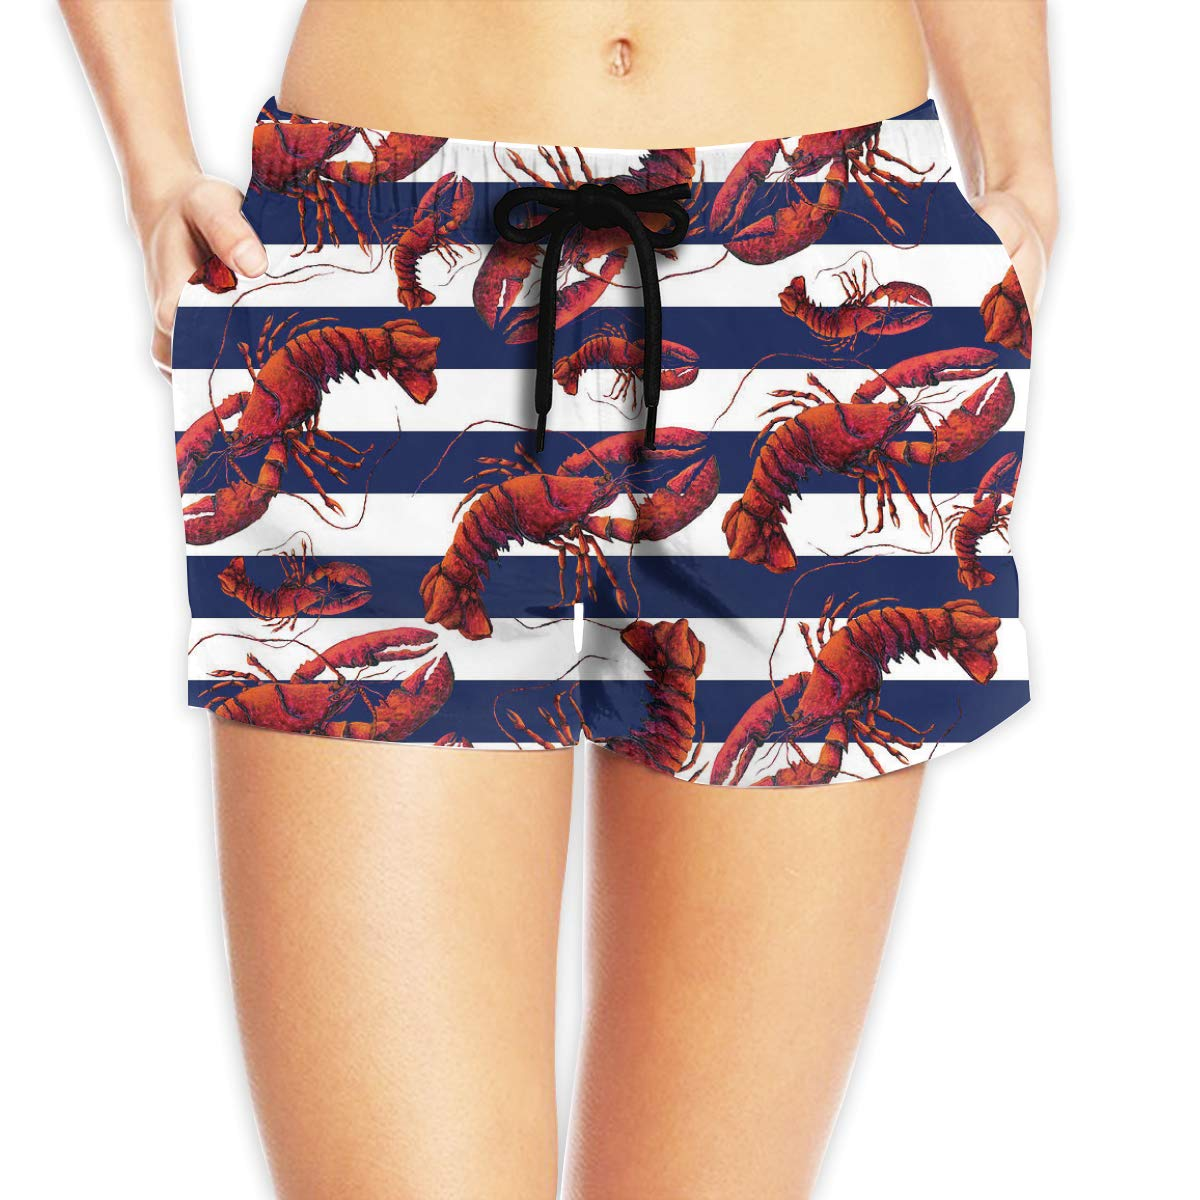 EYFlife Red White and Blue Striped Lobster Women Soft Elastic Shorts Casual Beach Shorts with Drawstring